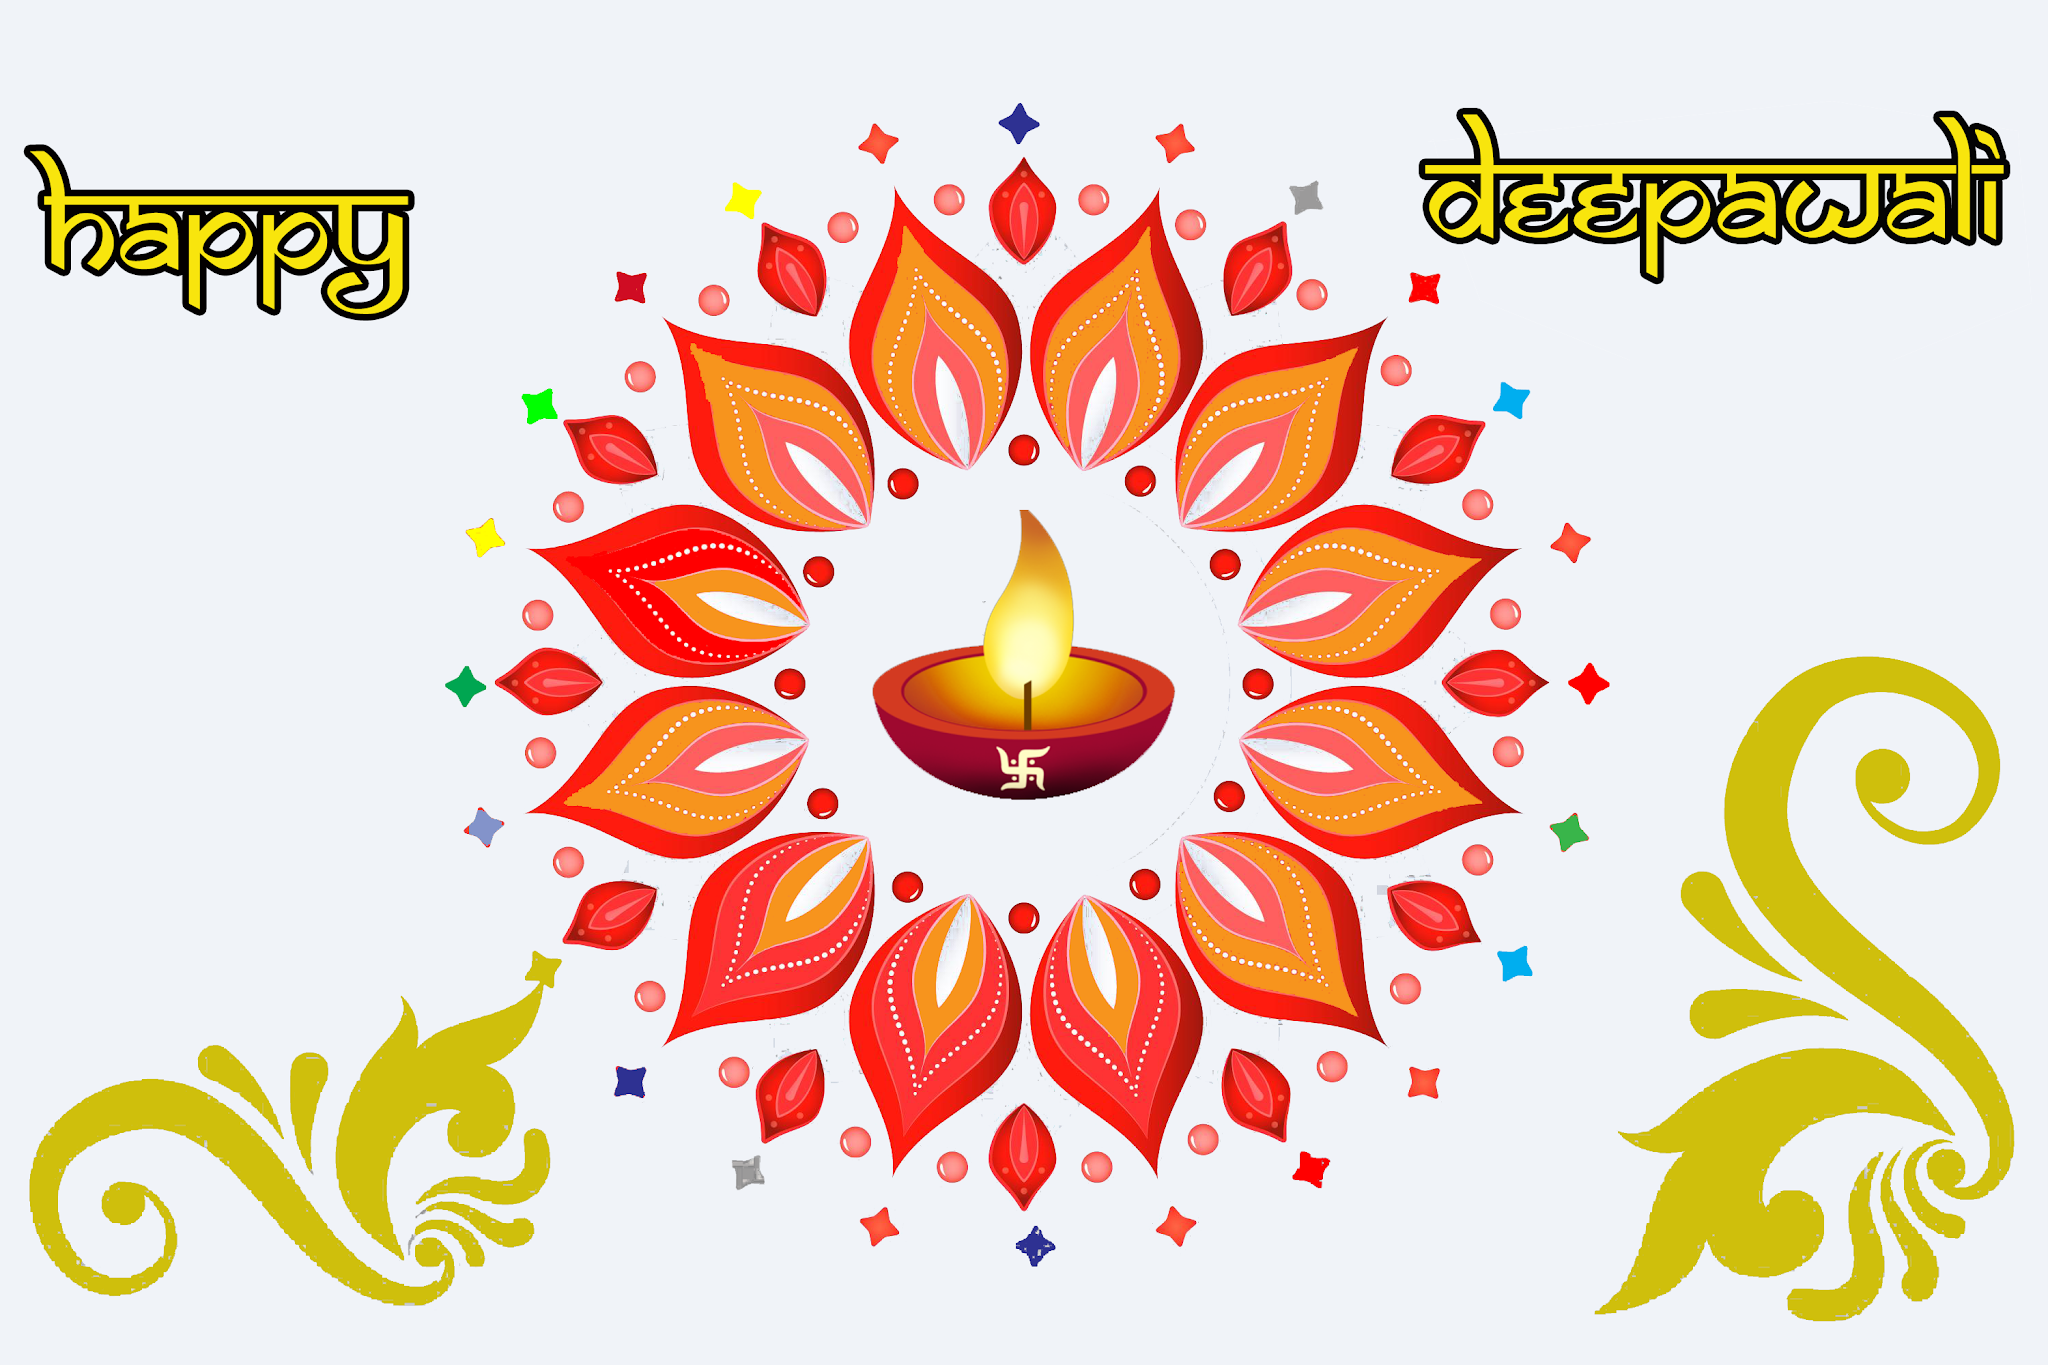 happy diwali, tihar, deepawali wishes and greetings